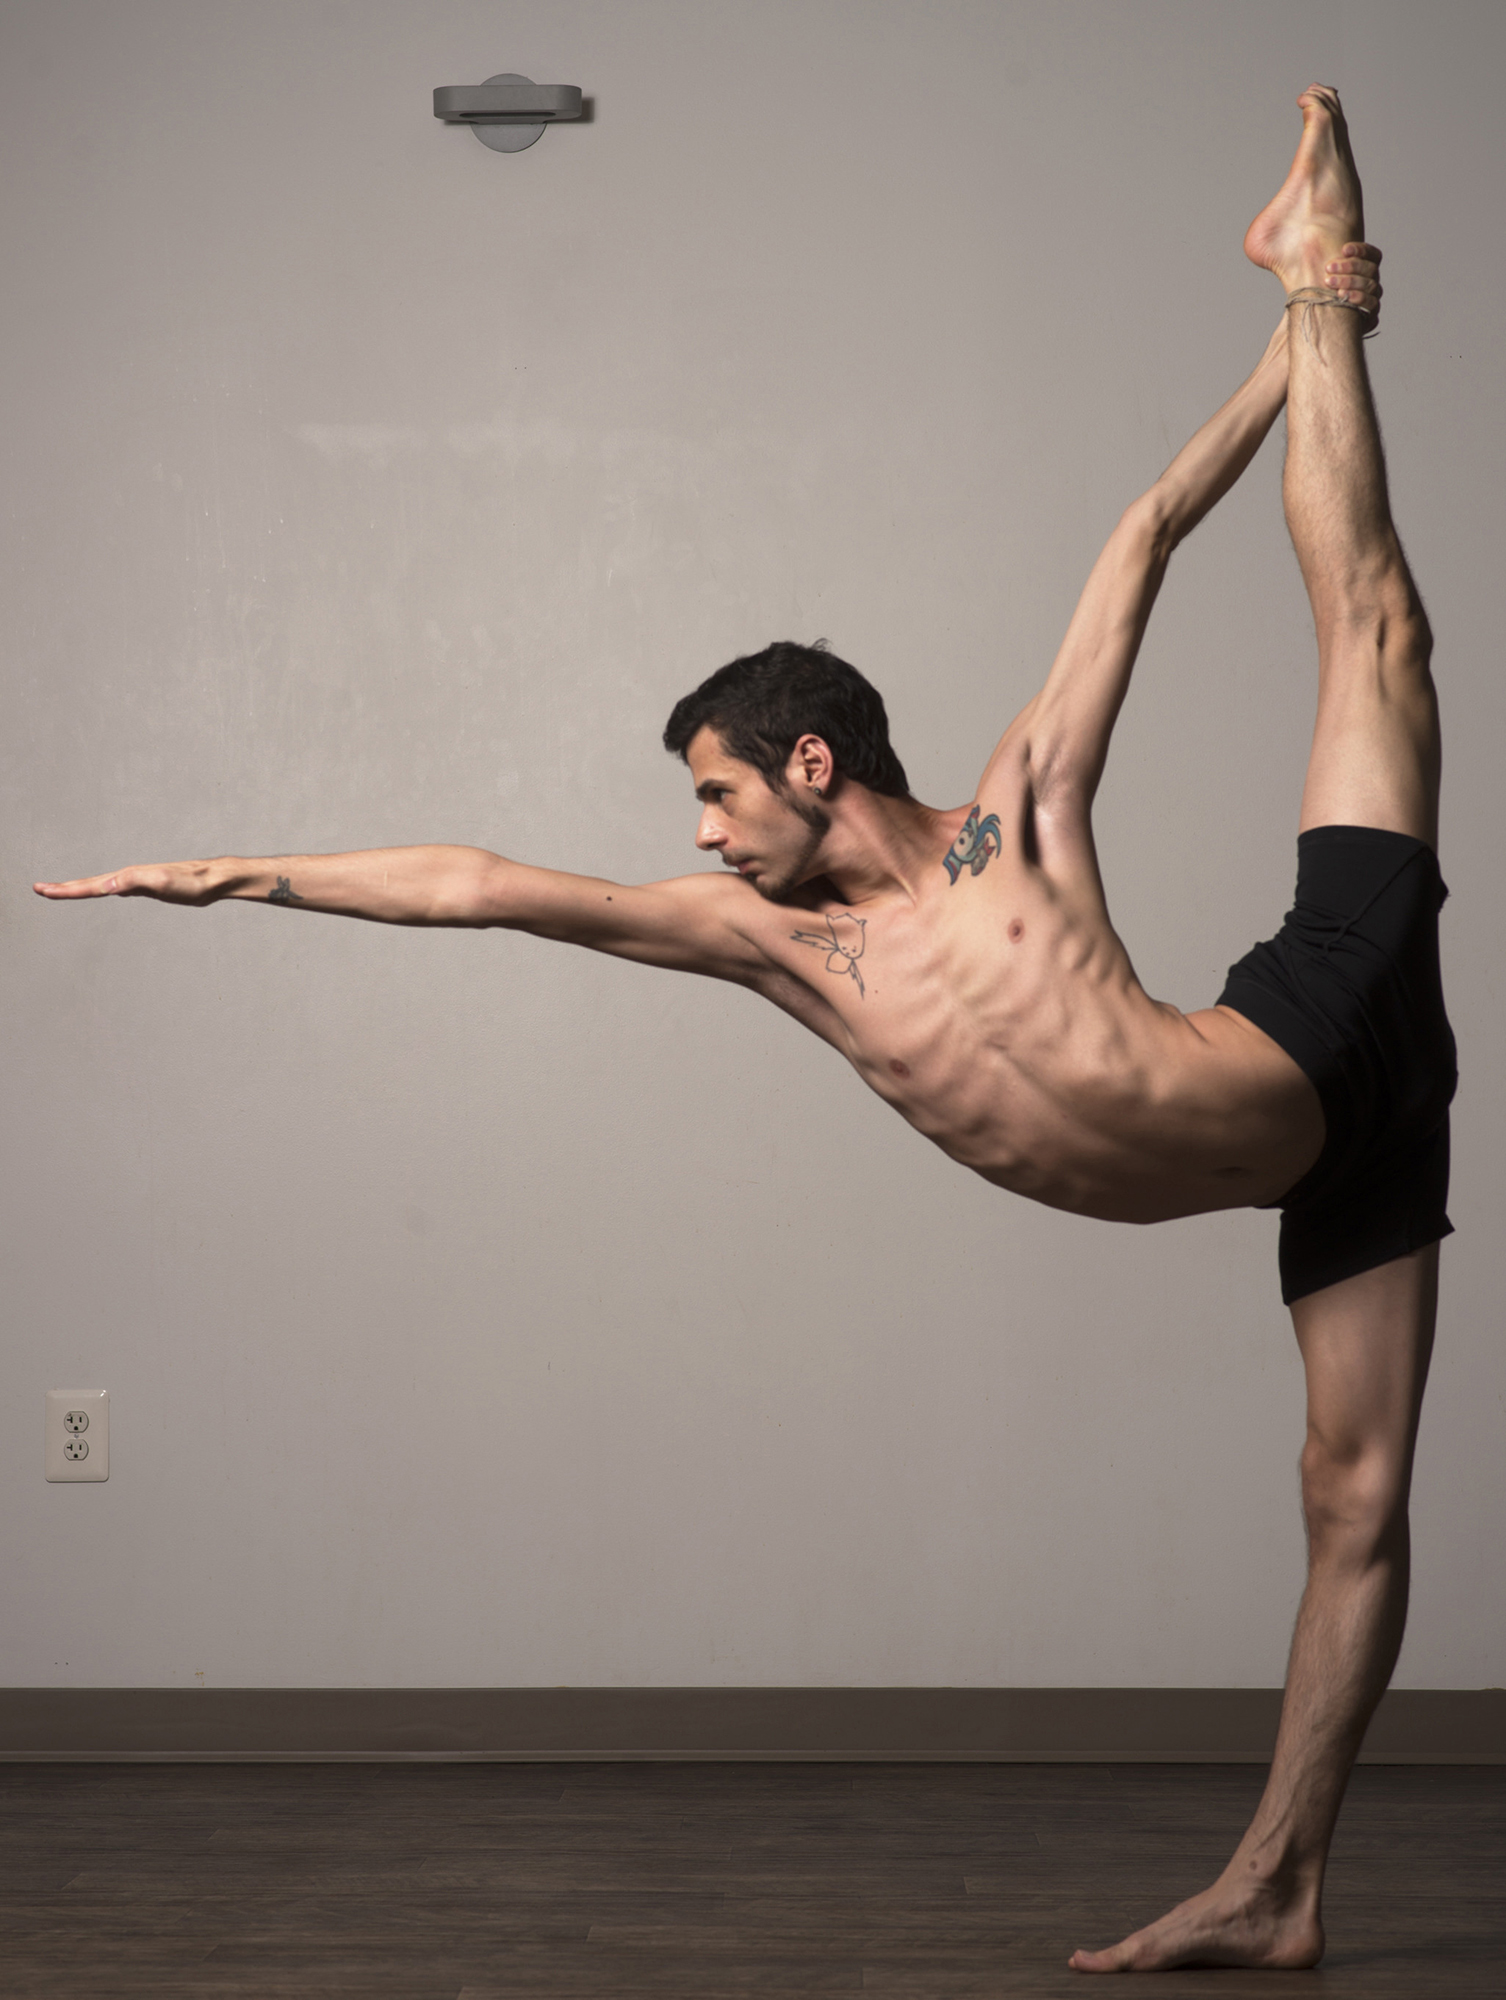 Adrian Hummell A Bikram Yoga Instructor From Bethesda Maryland Is Photographed Demonstrating